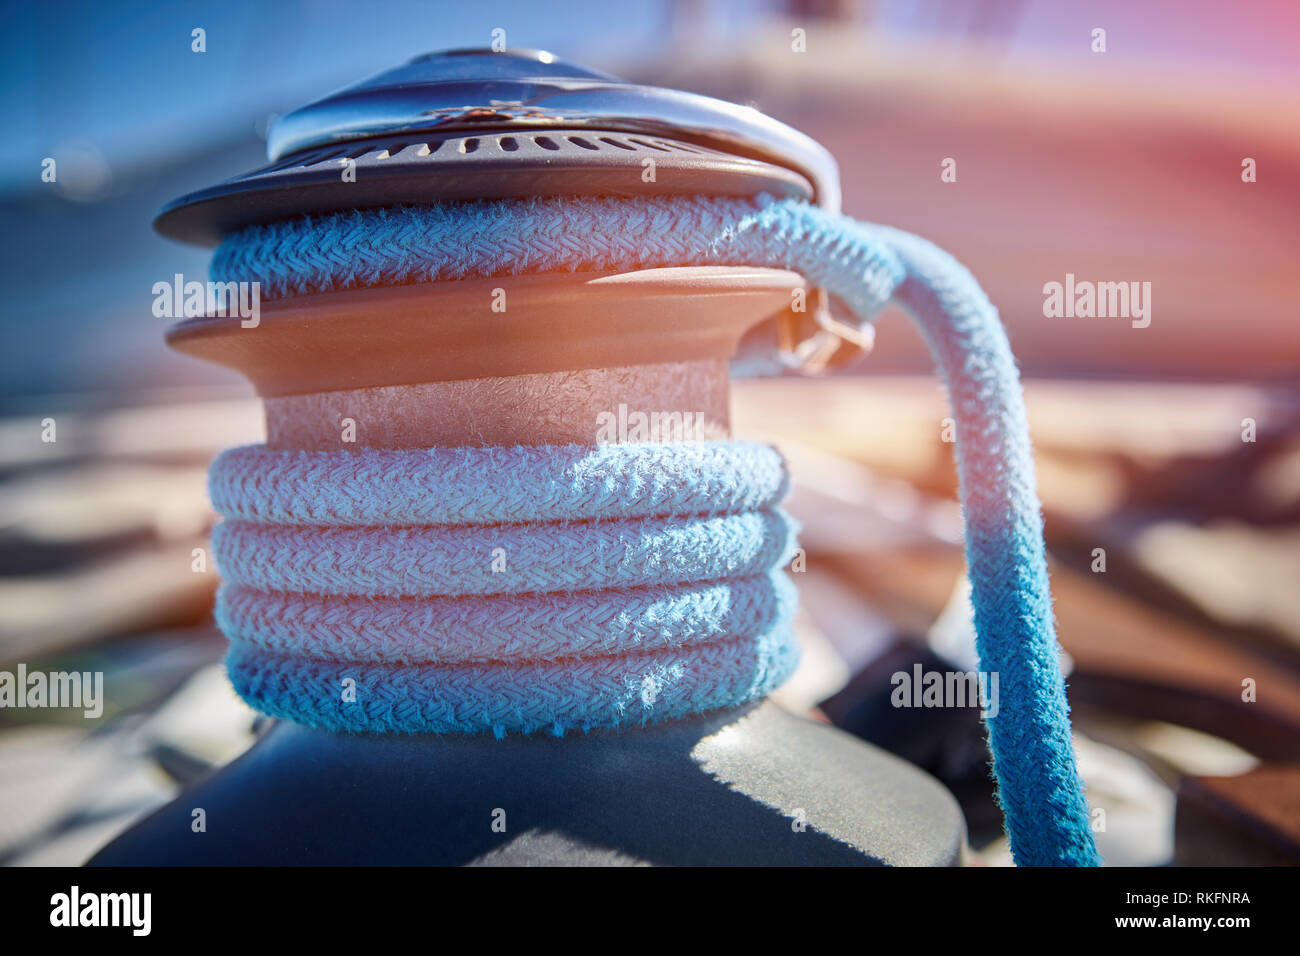 sailing ropes on a yacht close-up. line used to control the angle of the mainsail to the wind - Stock Image